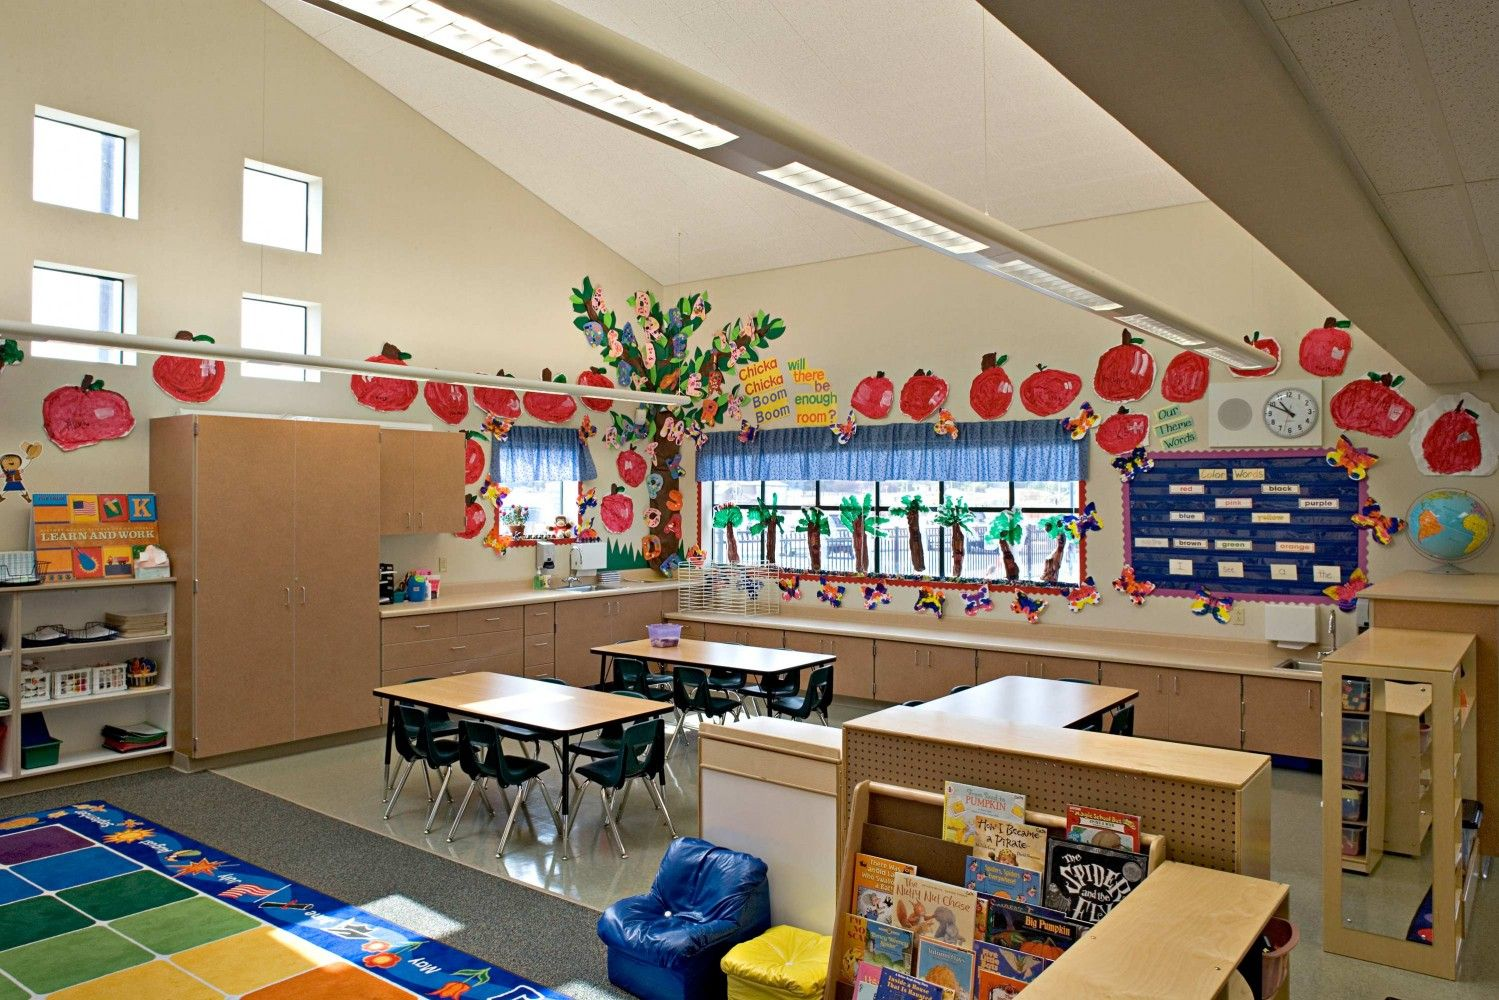 elementary school classroom design elementary school render classroom decor design pinterest classroom design school classroom and classroom - Classroom Design Ideas